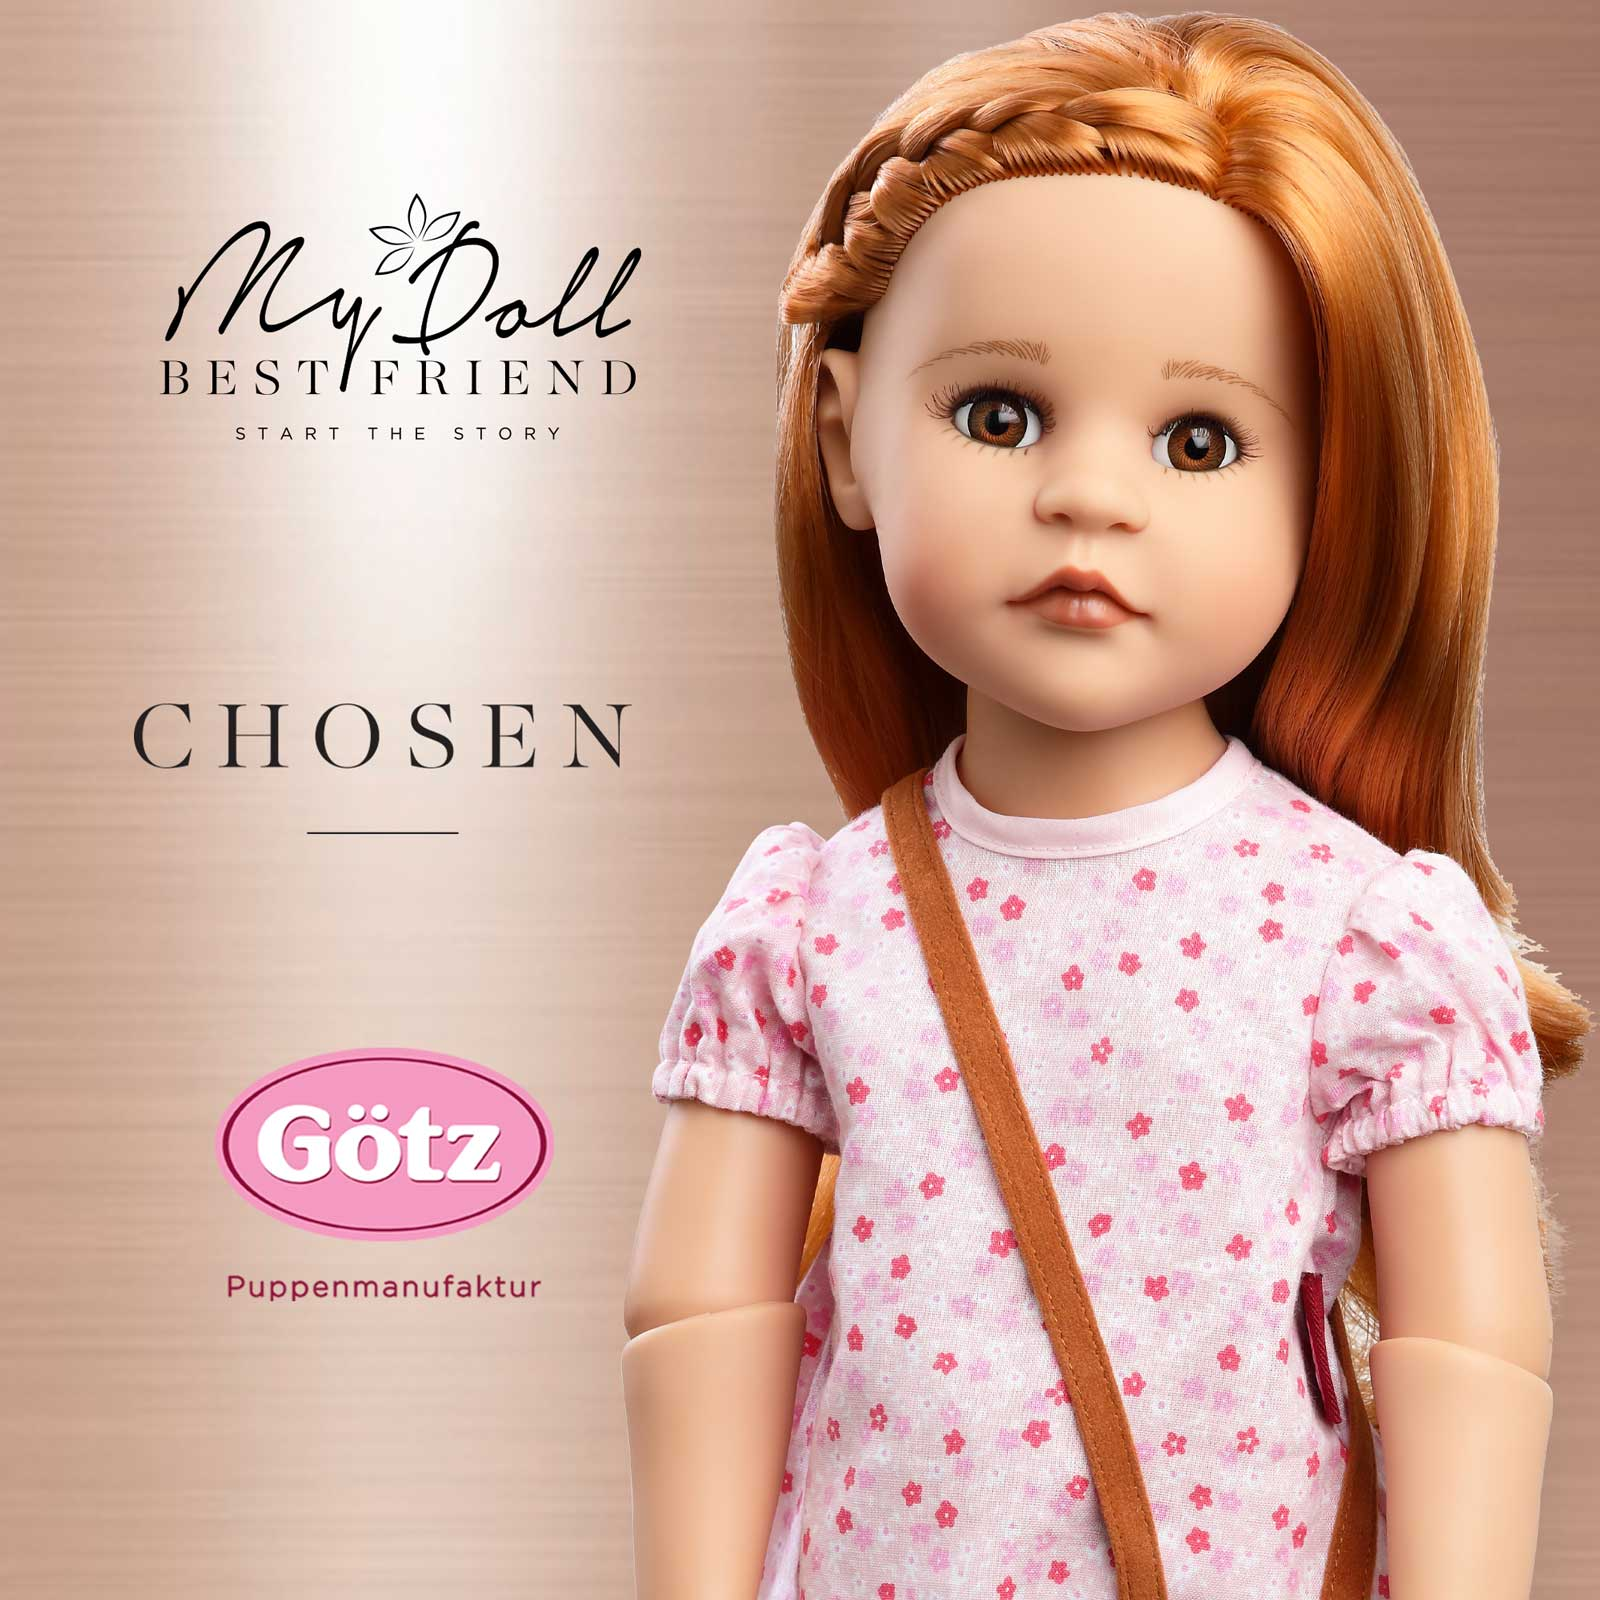 My Doll Best Friend Chosen Gotz Happy Kidz Isla Promotional Image November 2019